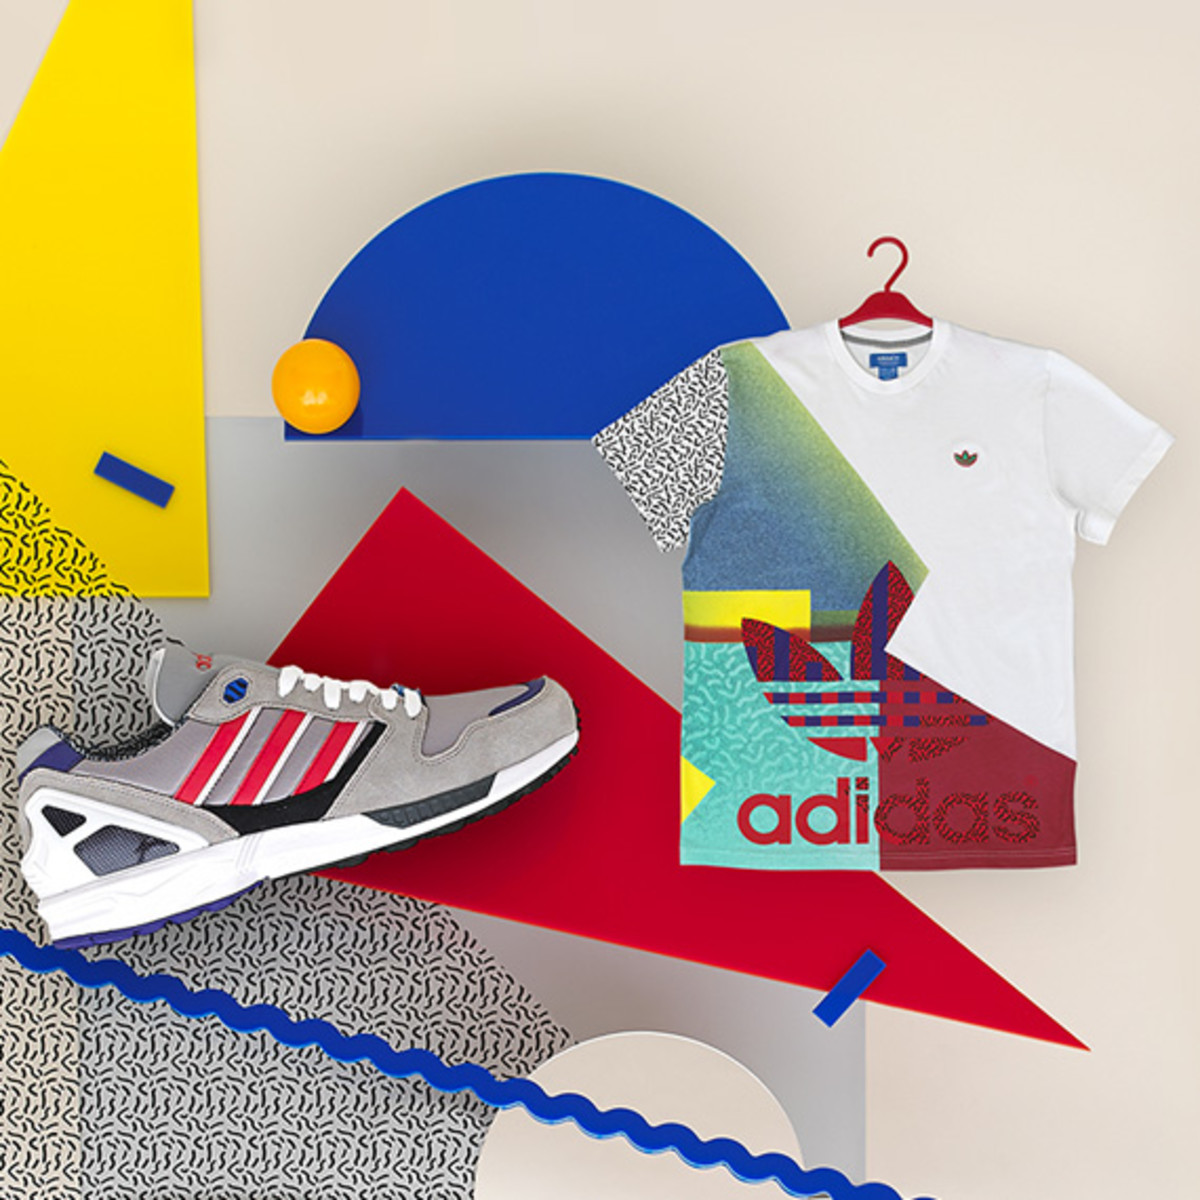 adidas-originals-select-collection-size-uk-exclusive-12